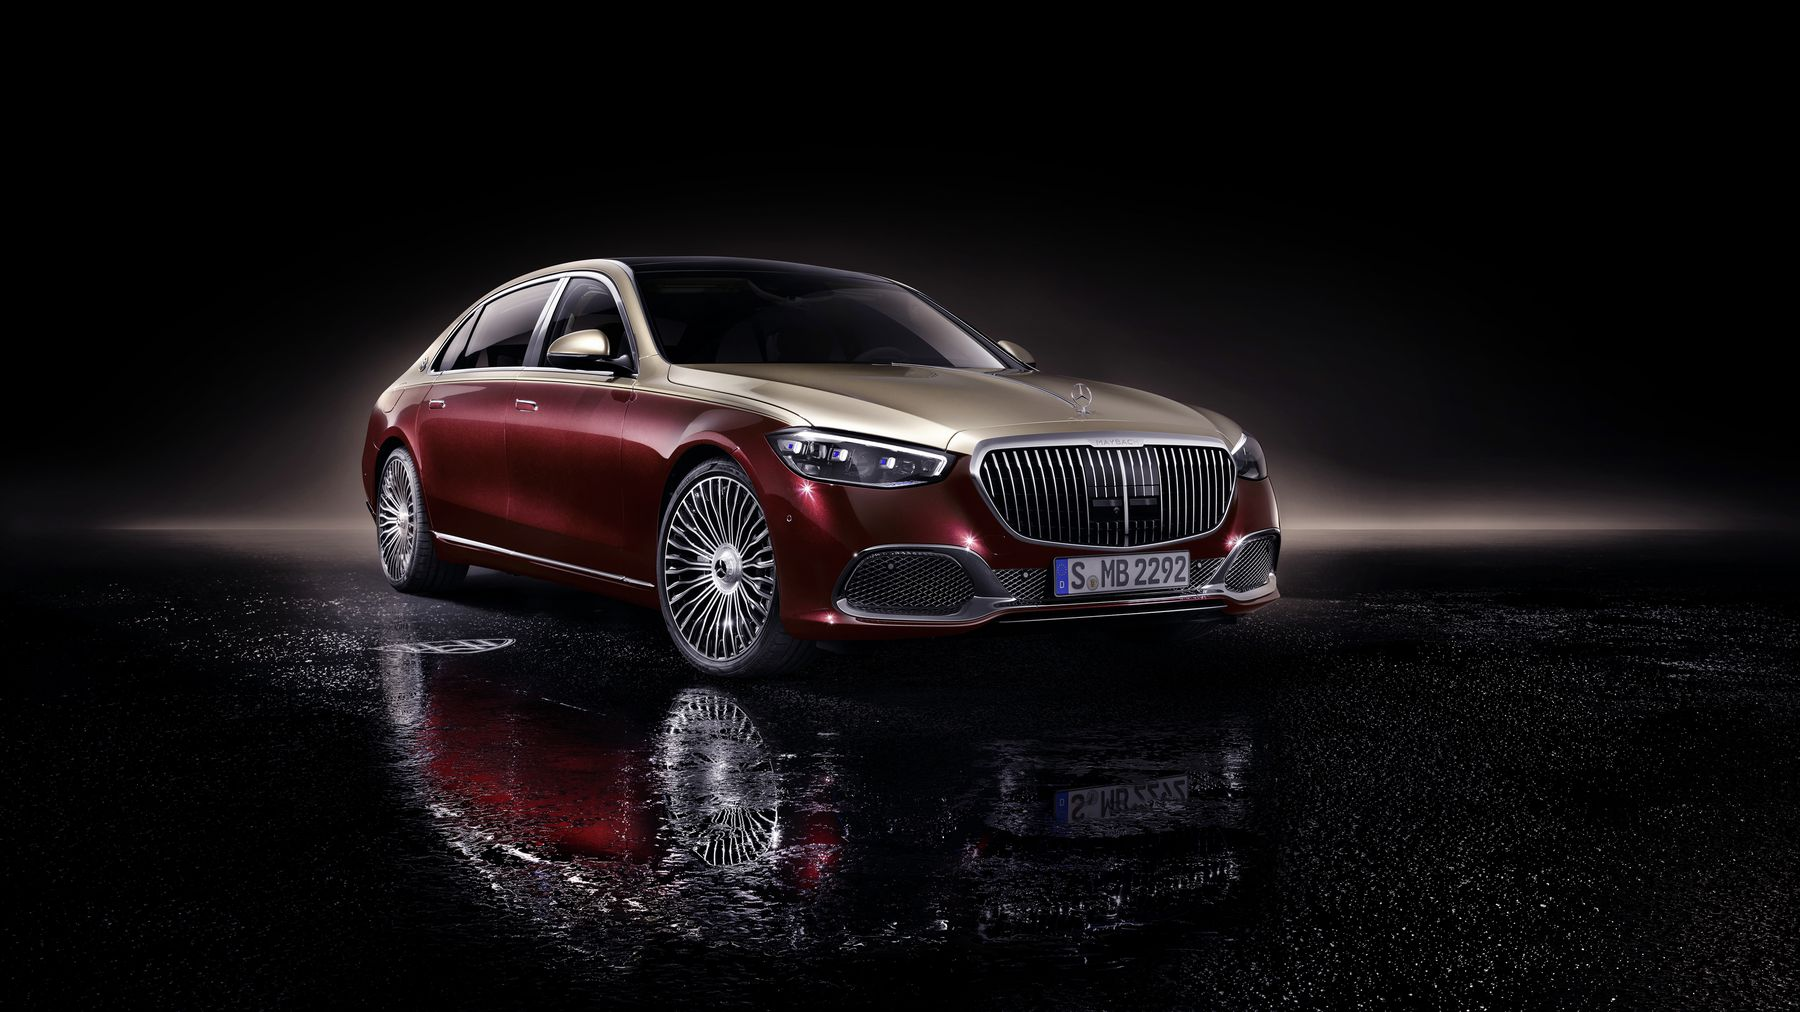 specifications and price of 2021 Mercedes Benz Maybach S Class in Nigeria